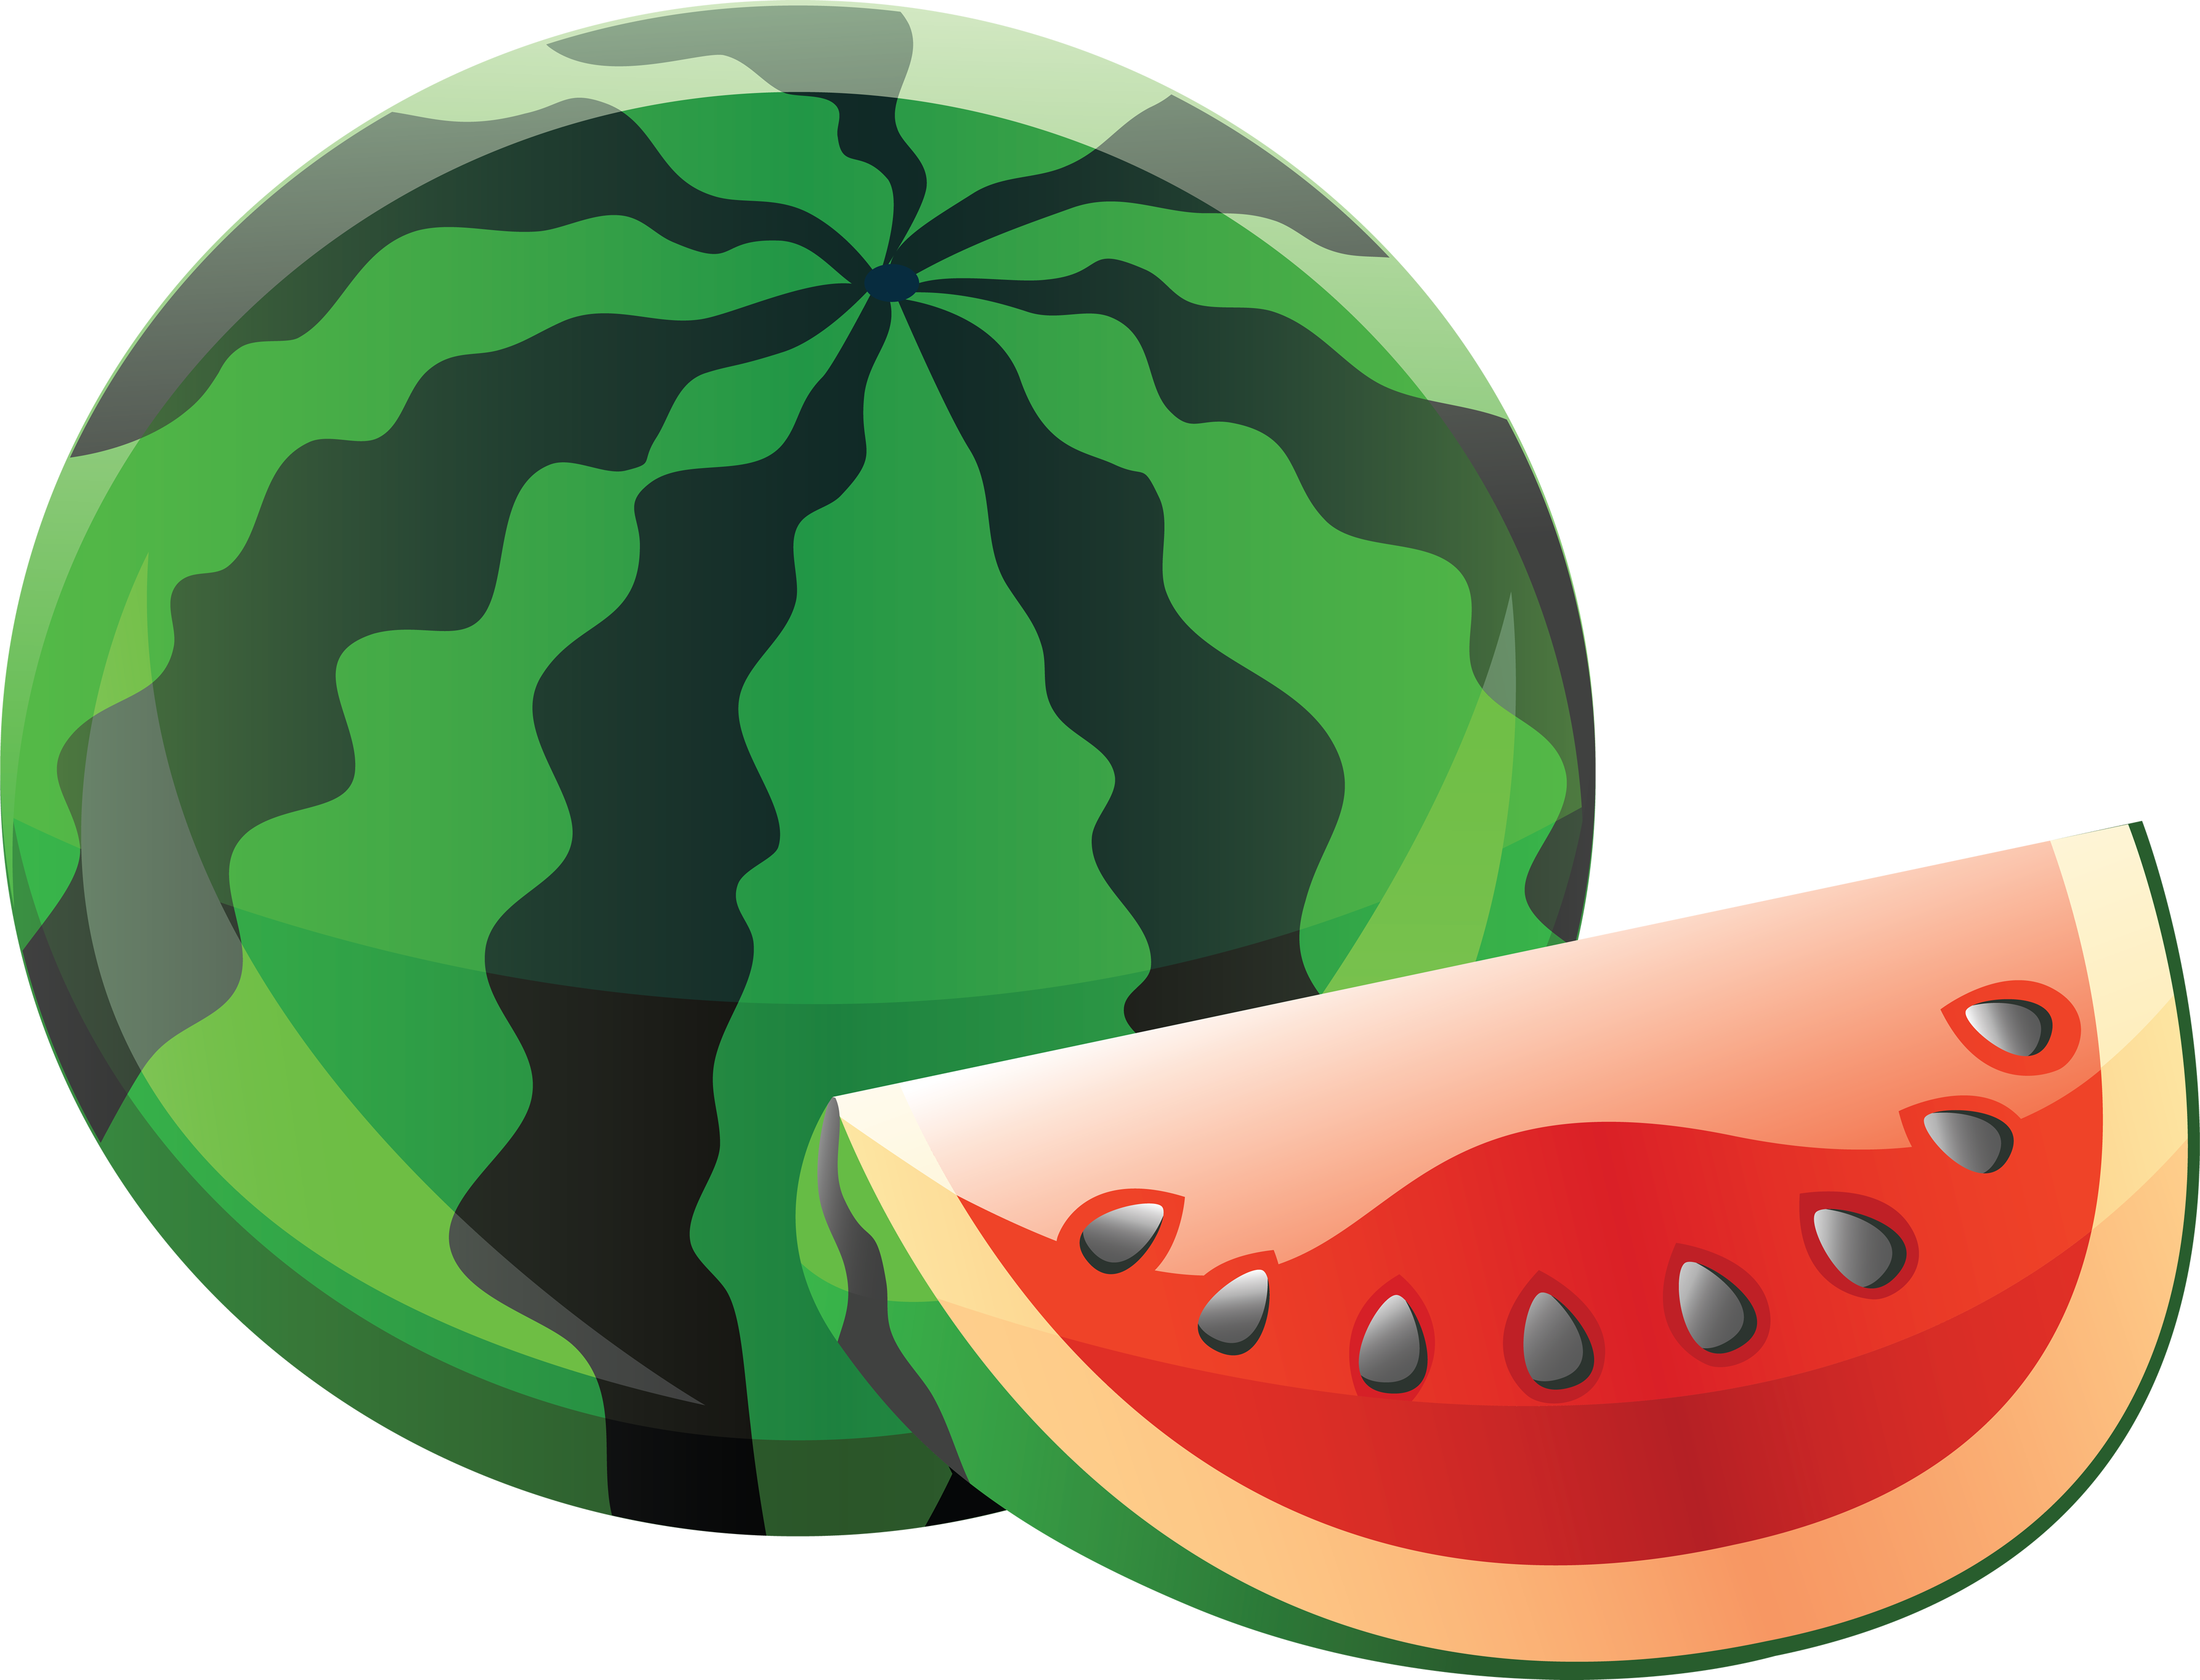 Png images free download. Fruit clipart watermelon